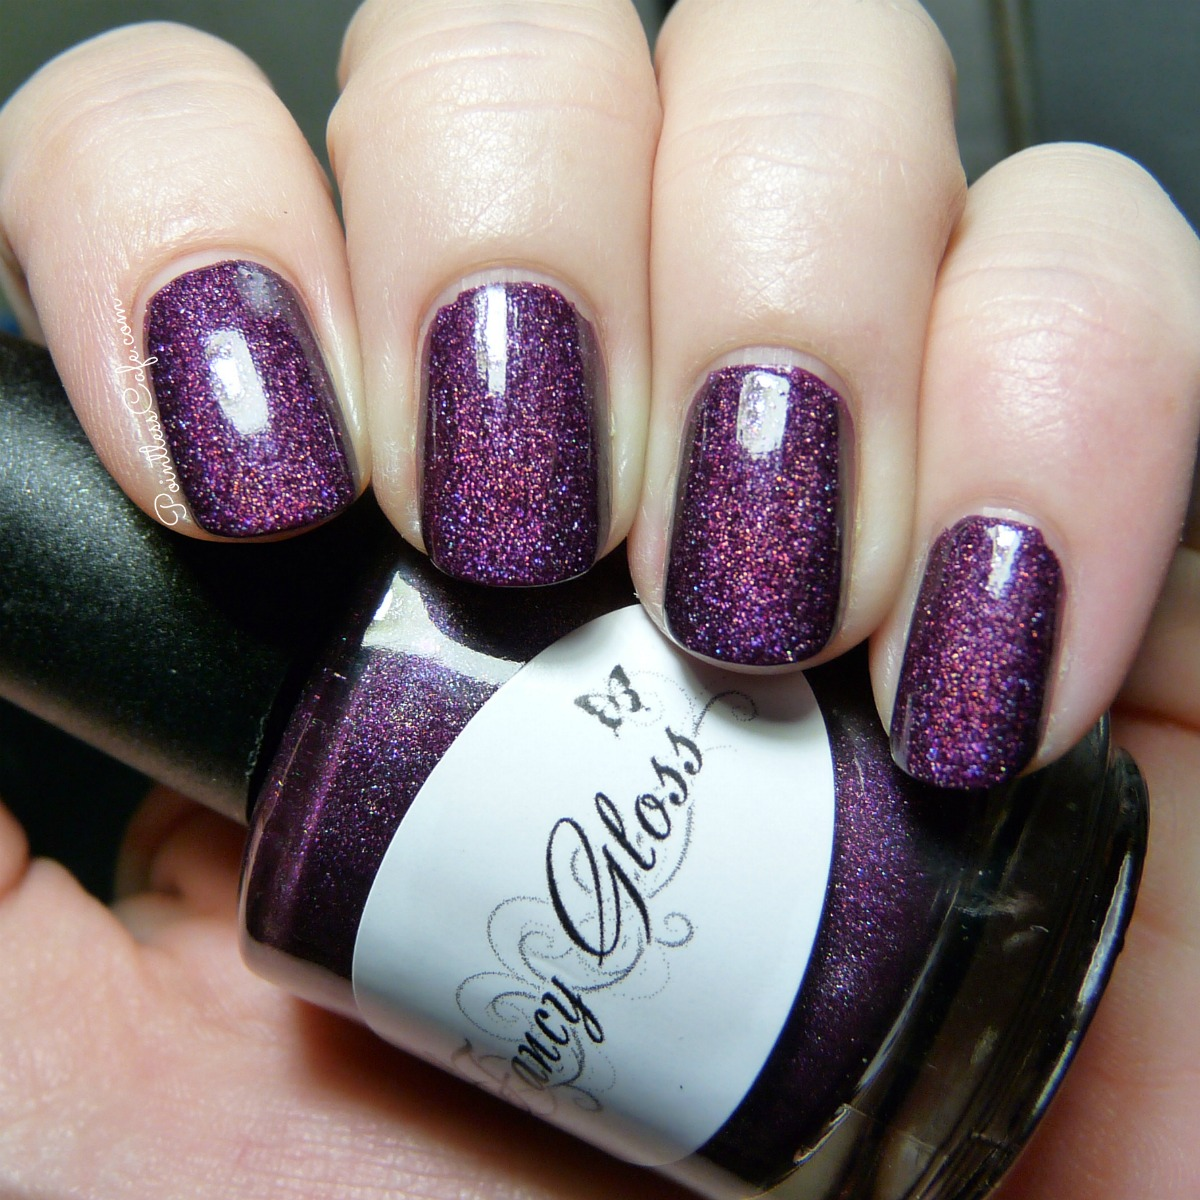 Fancy Gloss Lacquer: Frozen Berries | Pointless Cafe